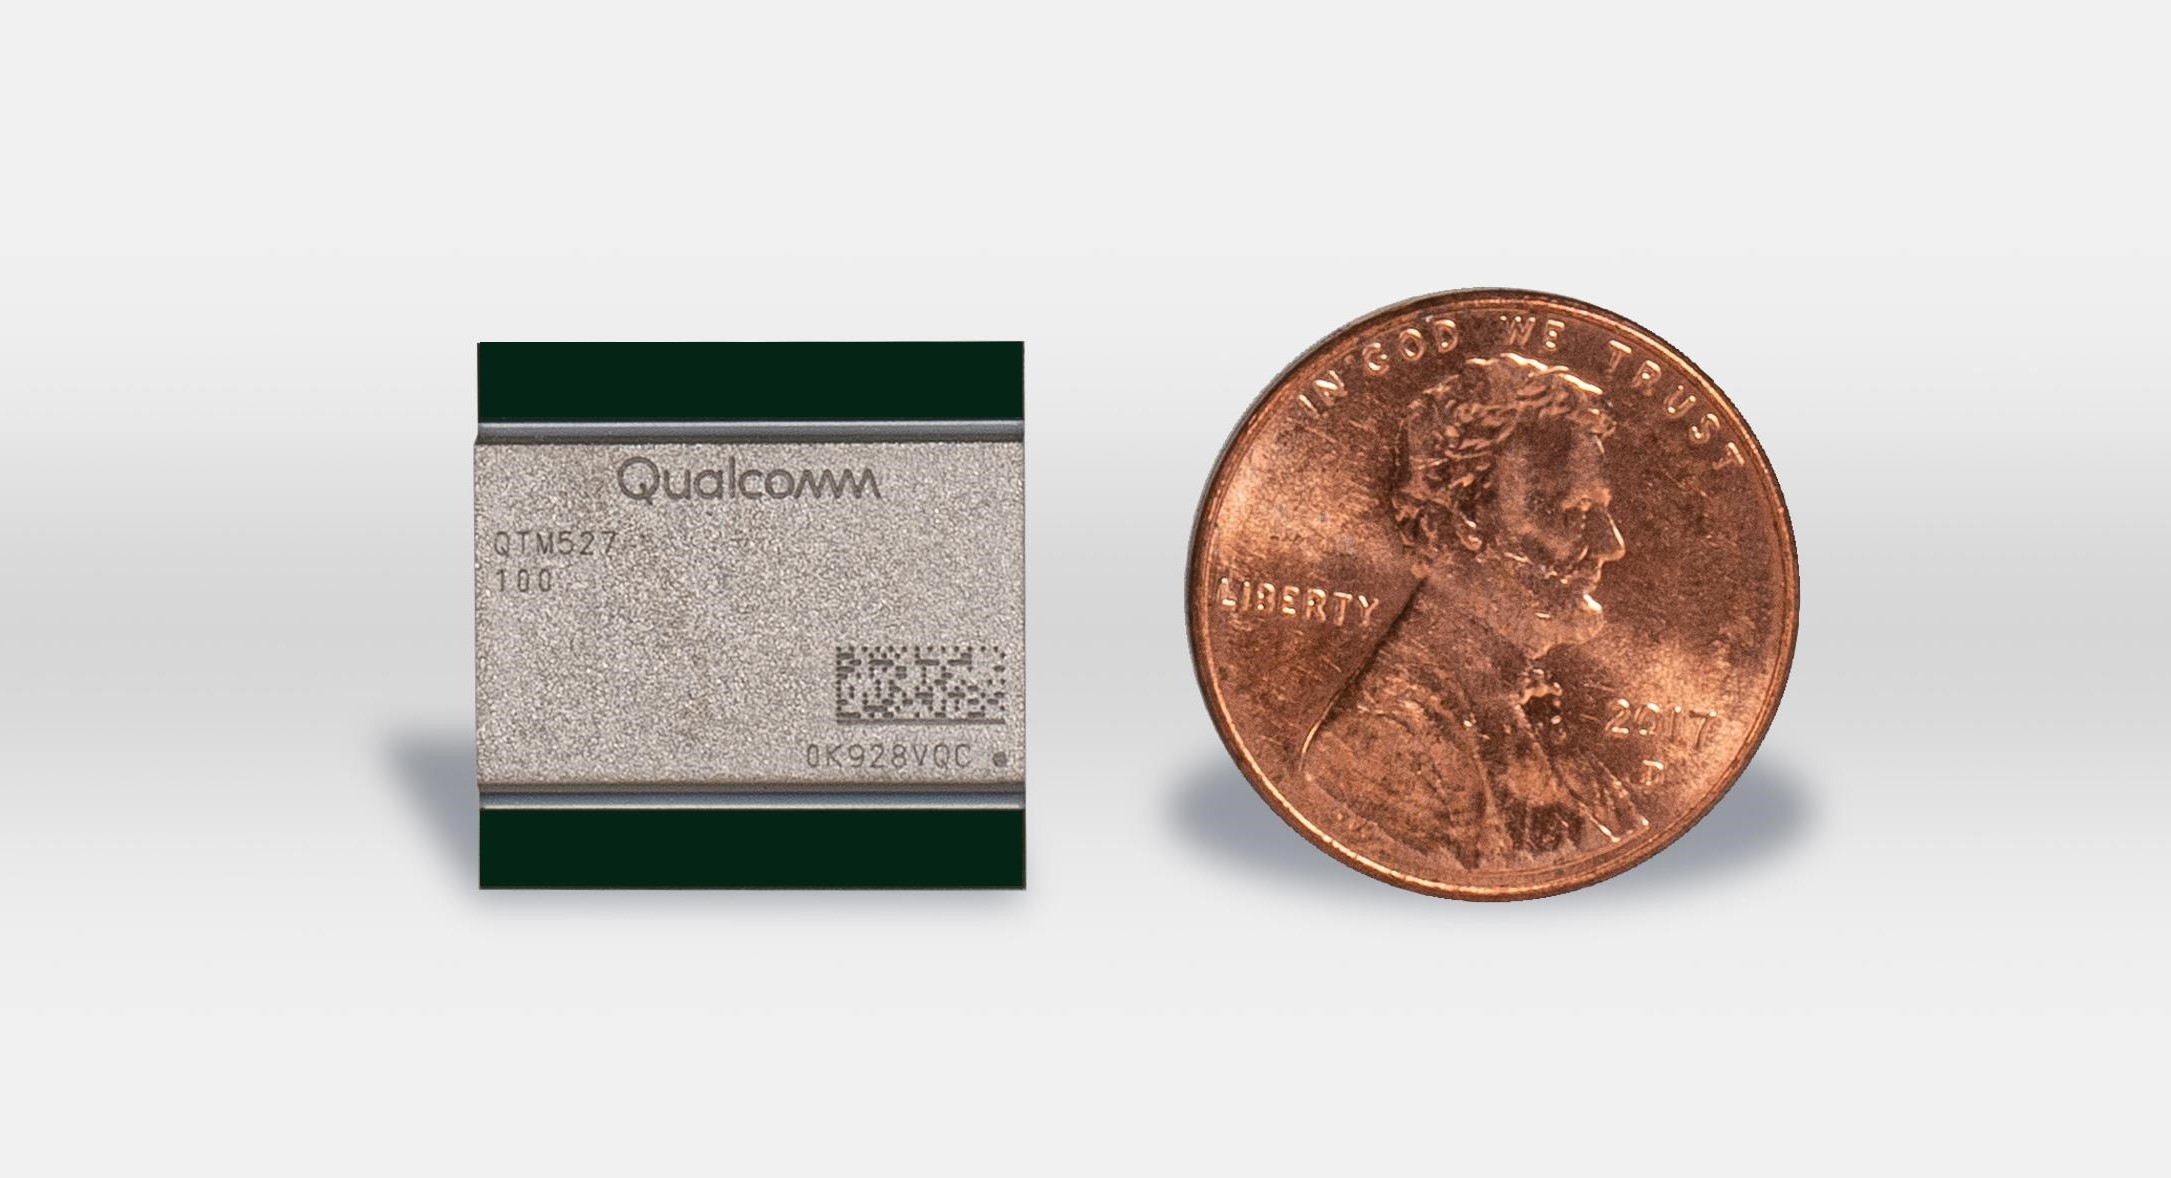 Qualcomm unveils the new QTM527 mmWave antenna module for